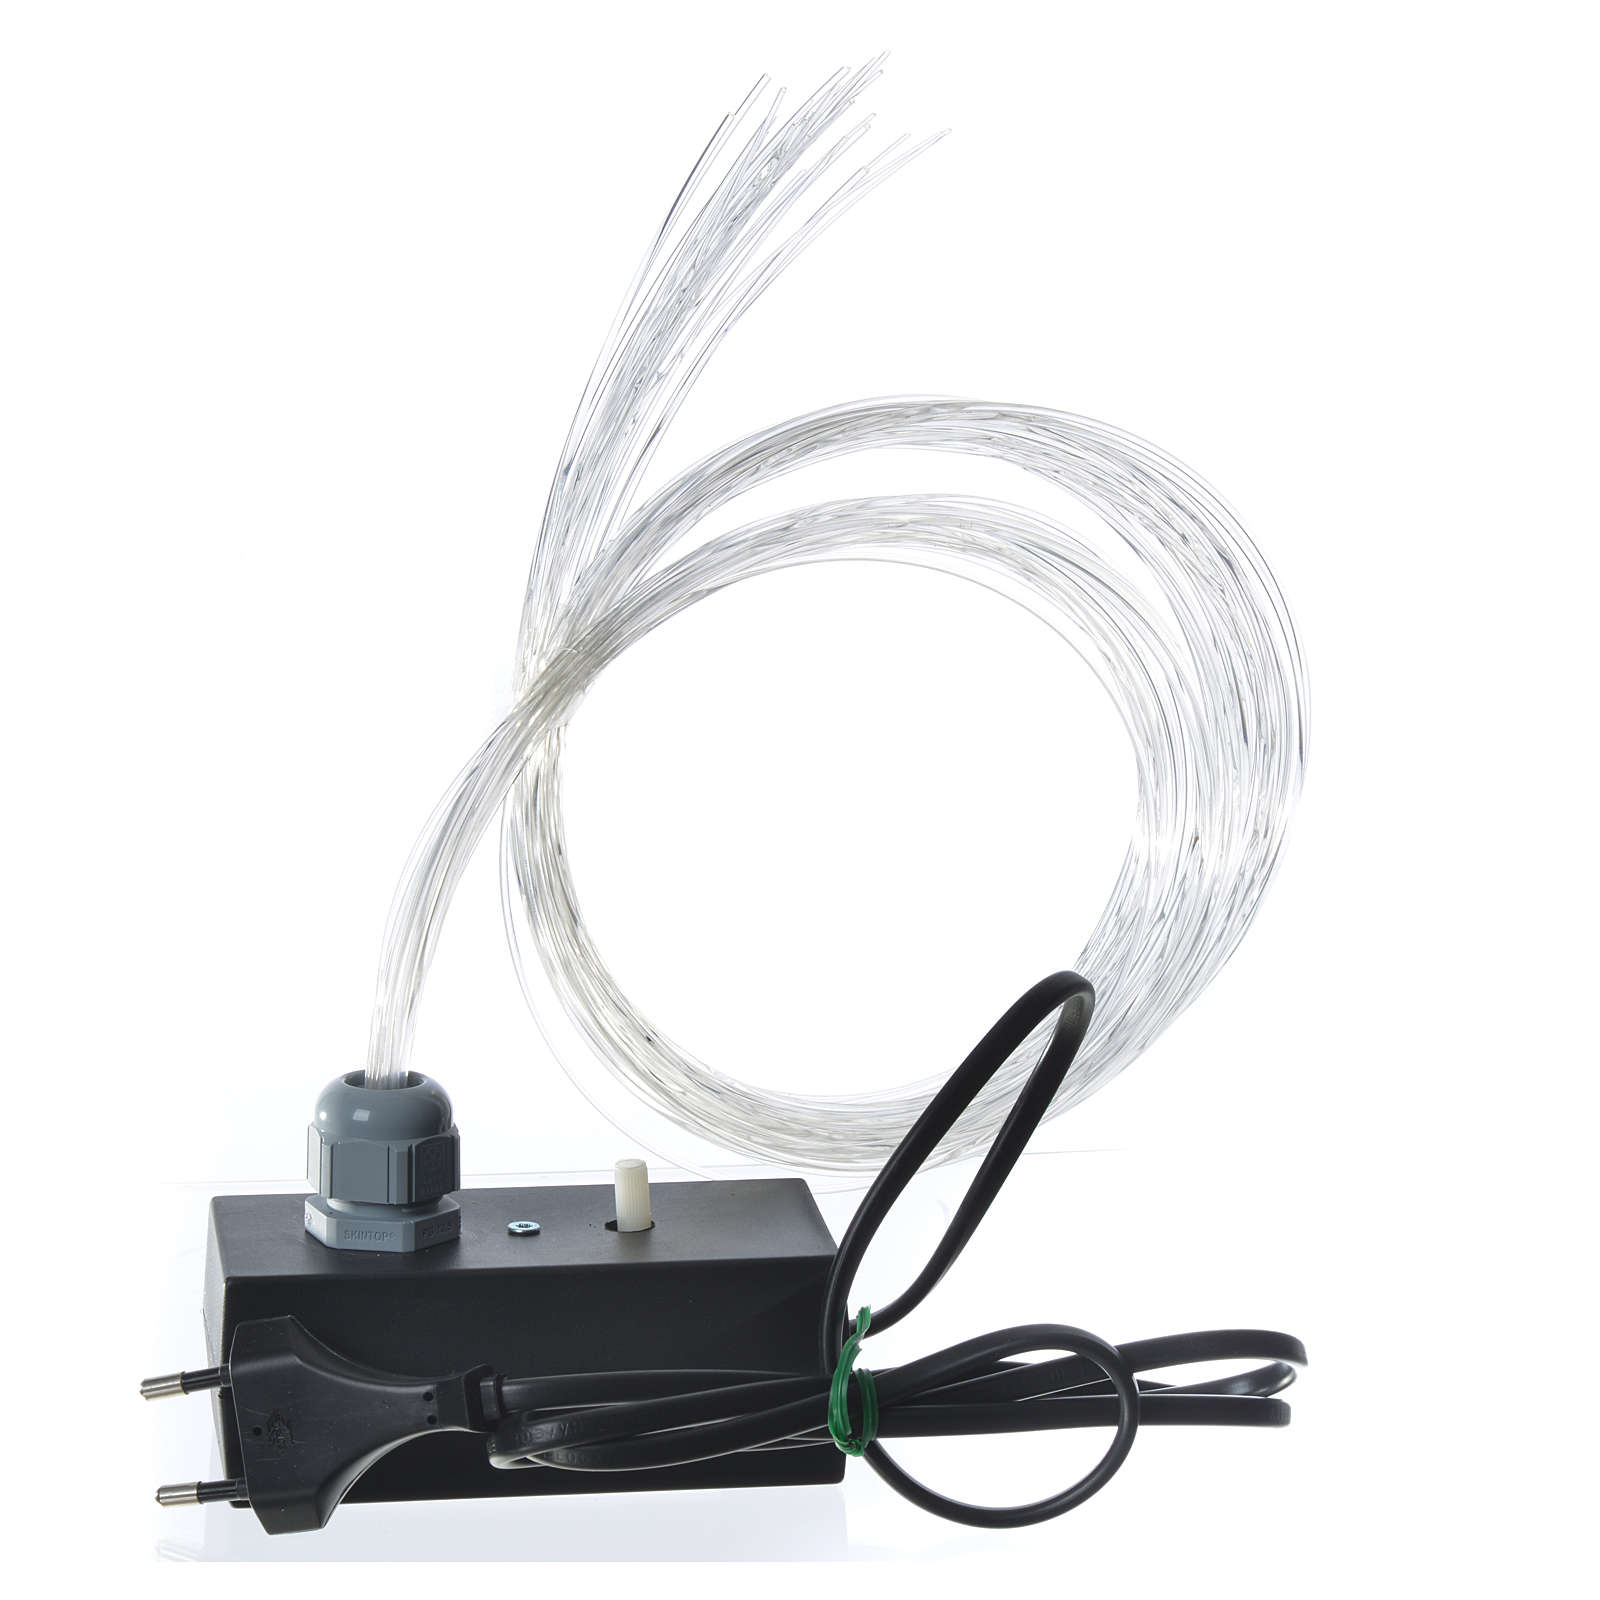 1 m optical fiber for nativity scene, led lightning with fade and flickering effects 4